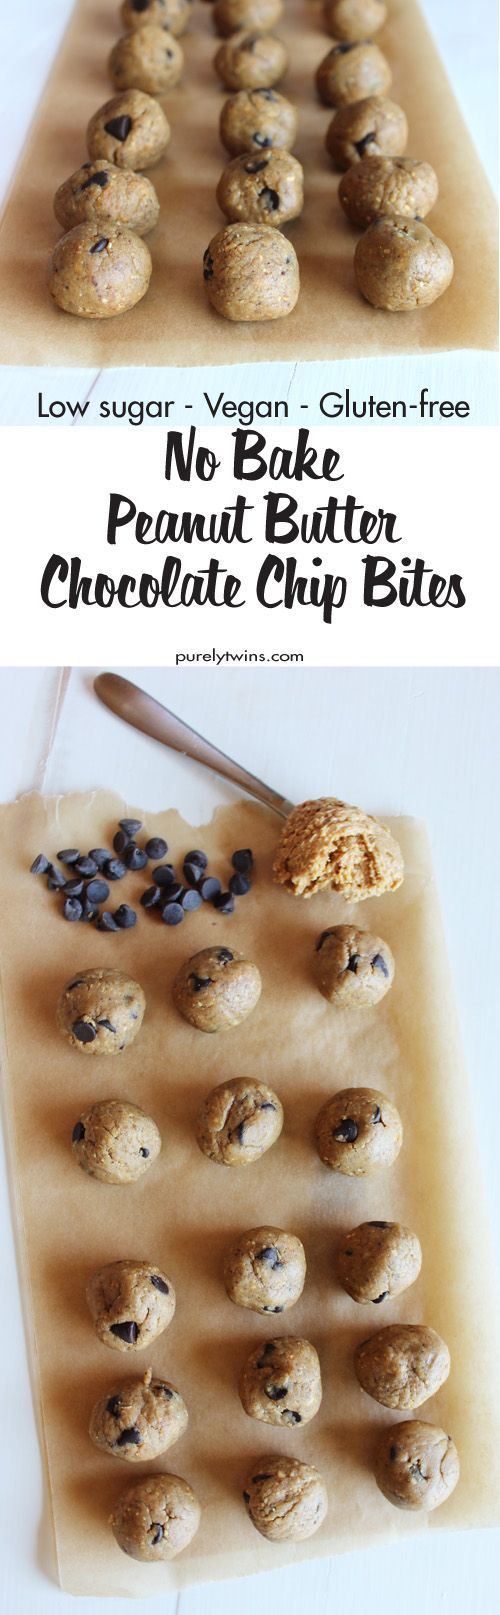 This simple and healthy no bake peanut butter protein energy balls recipe is perfect for easy snacking on-the-go! With protein powder, peanut butter, chocolate, chips, coconut milk and stevia, these energy balls will keep you satisfied for hours!